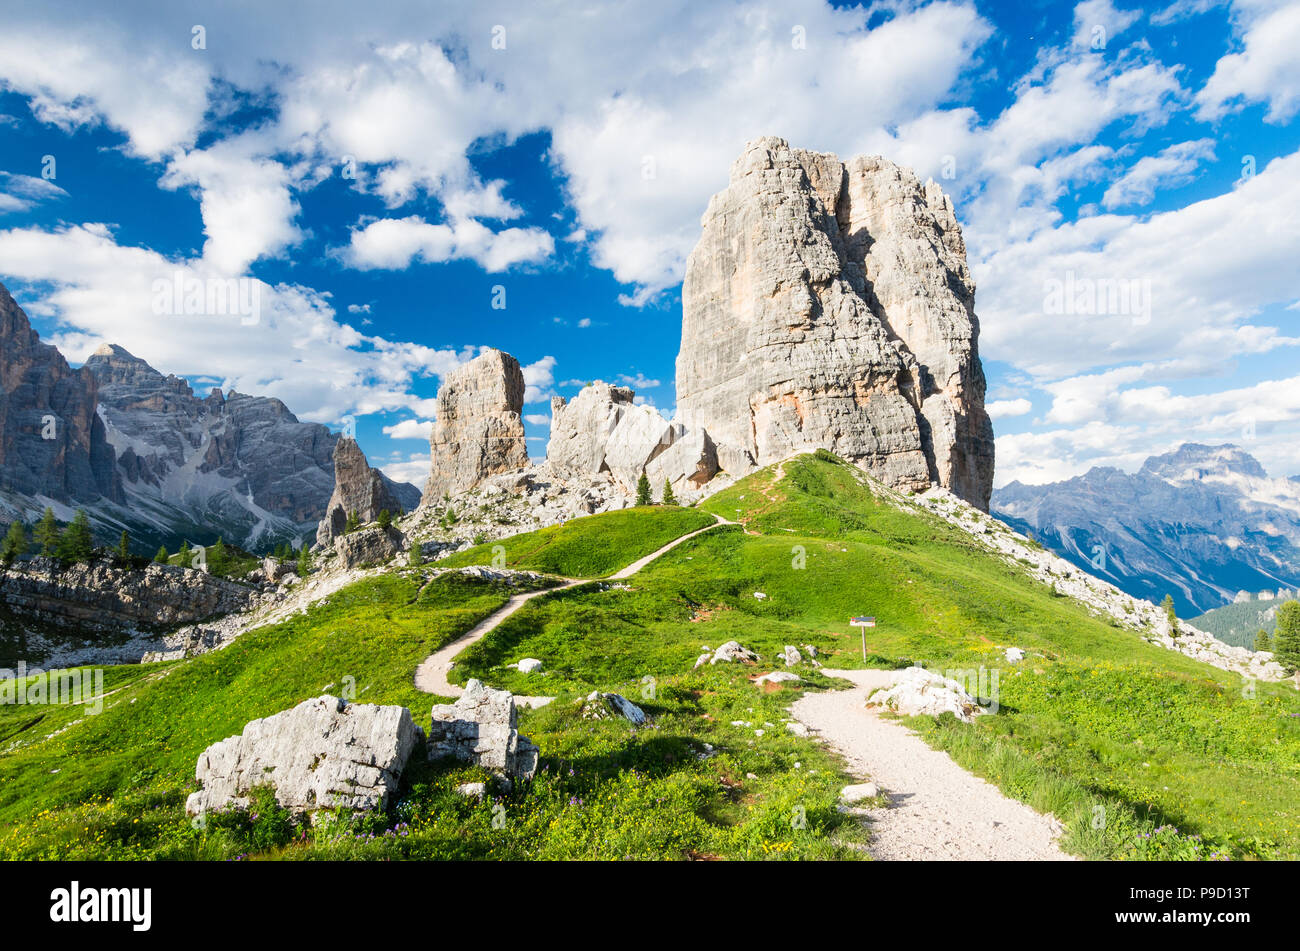 Cinque Torri, Dolomiti Alps, Italy. The Five Pillars in Dolomites mountains, Alto Adige, South Tyrol - Stock Image